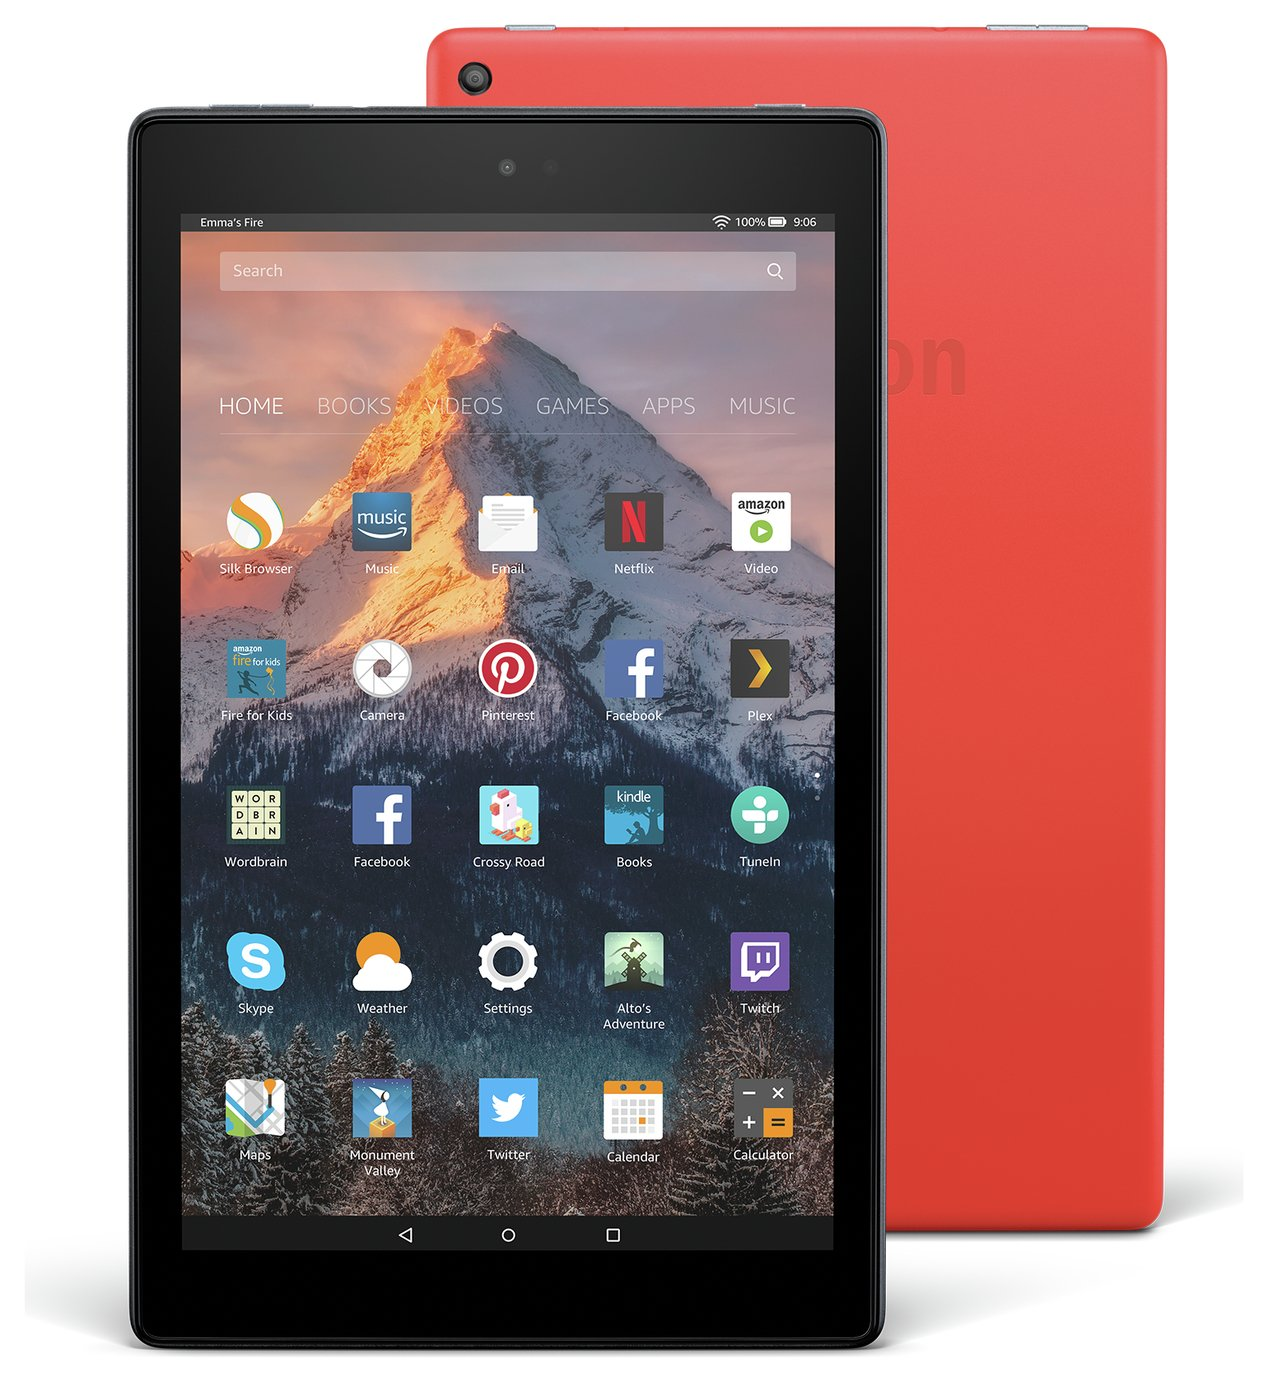 Amazon Fire 10 10.1 Inch 32GB Tablet - Red from Amazon